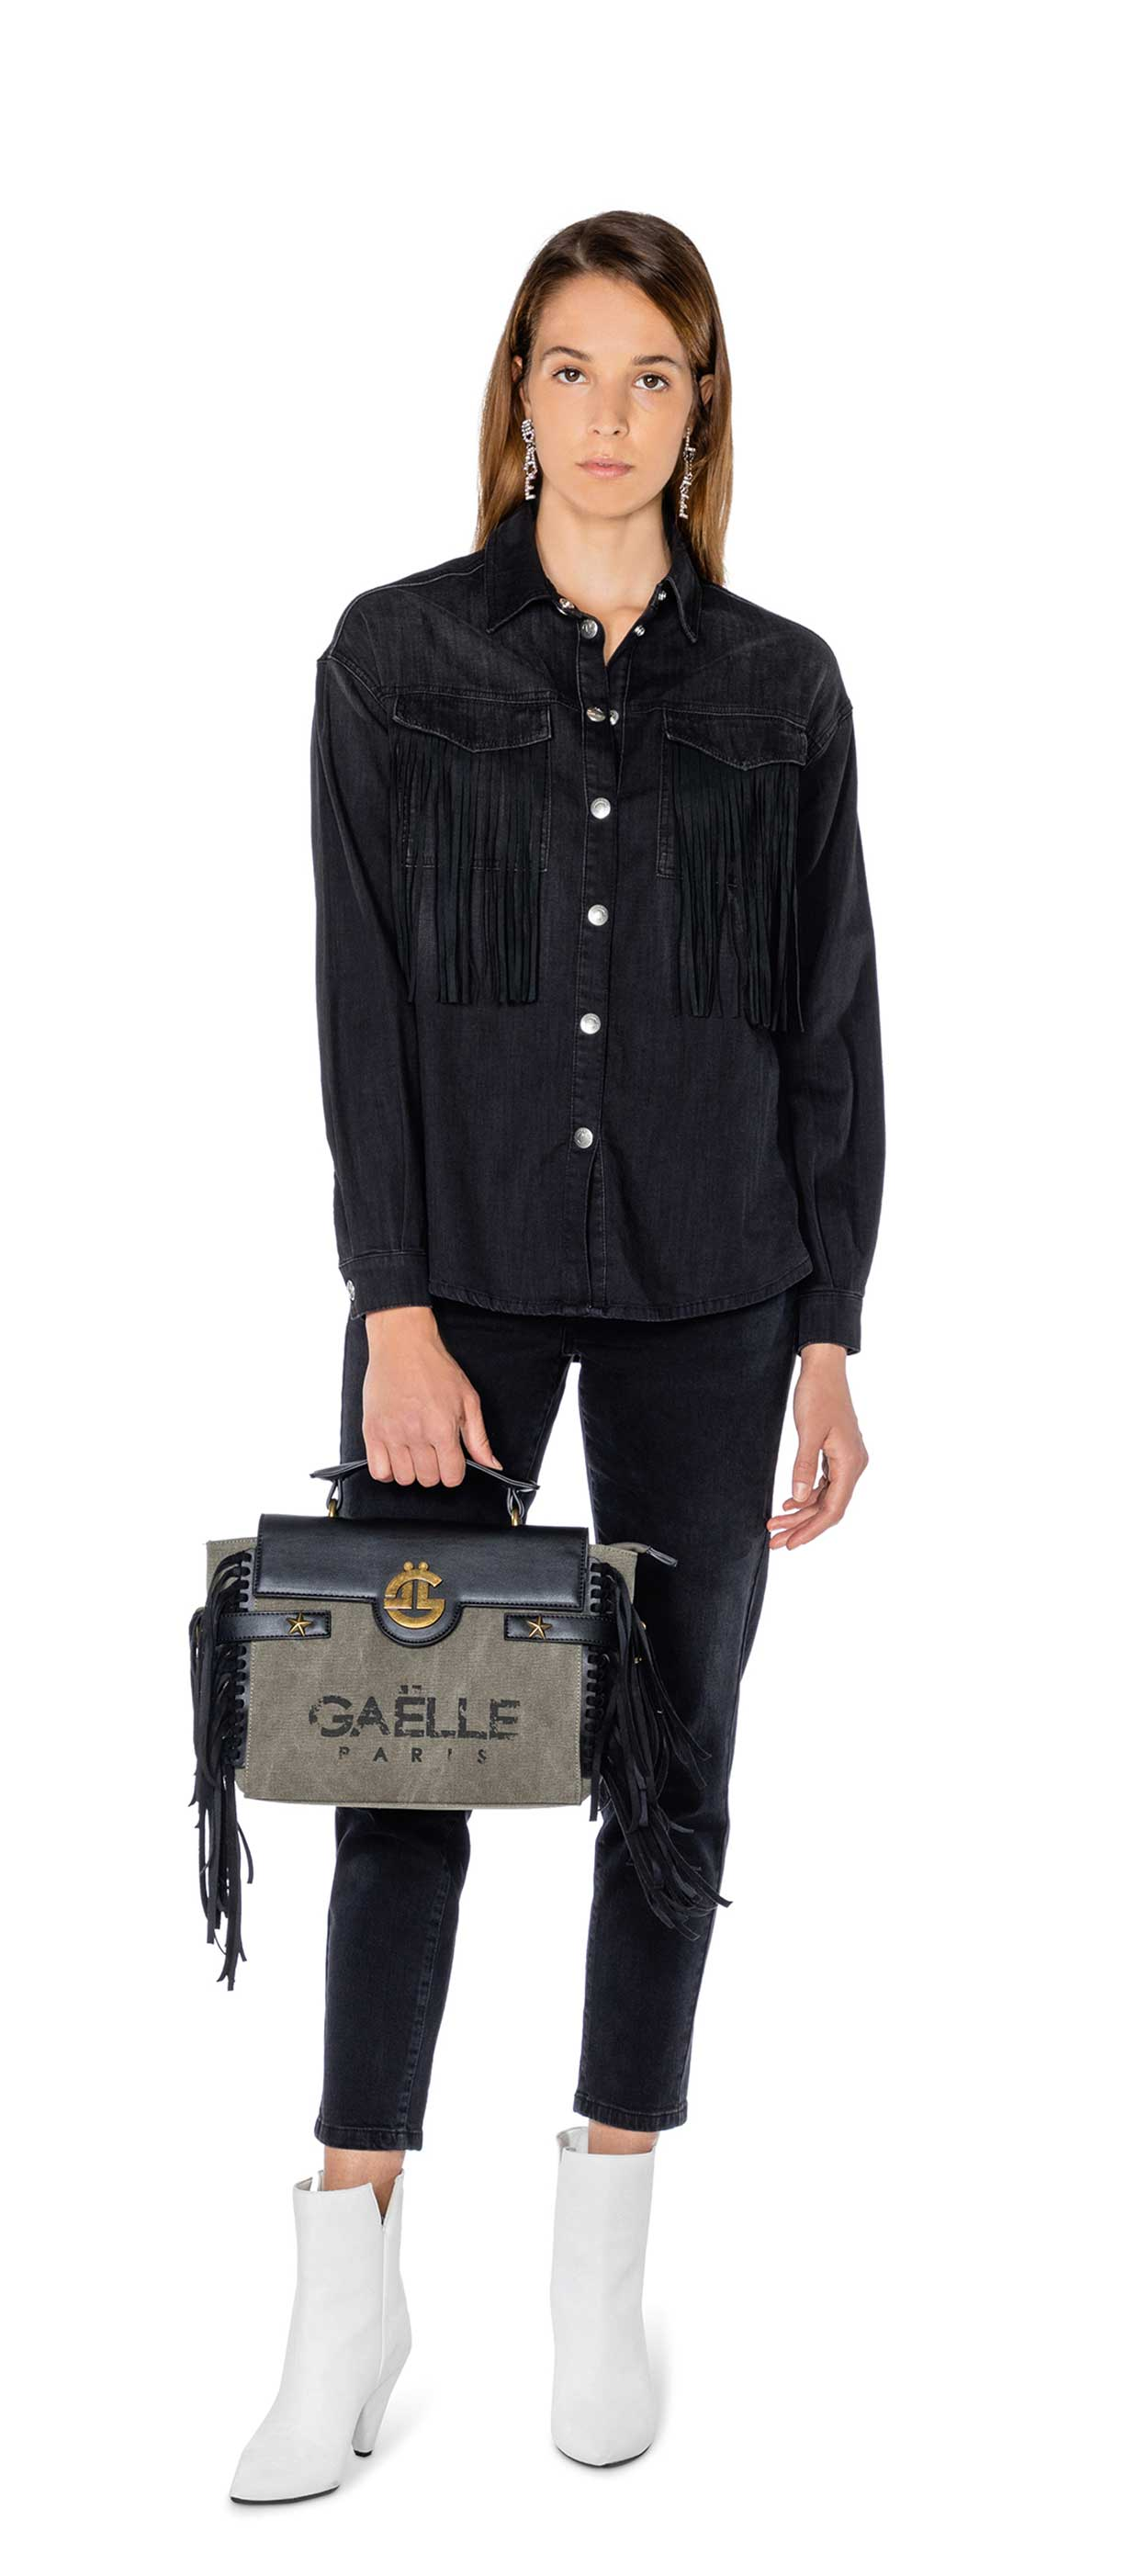 SHIRT - GBD7380 - GAELLE PARIS